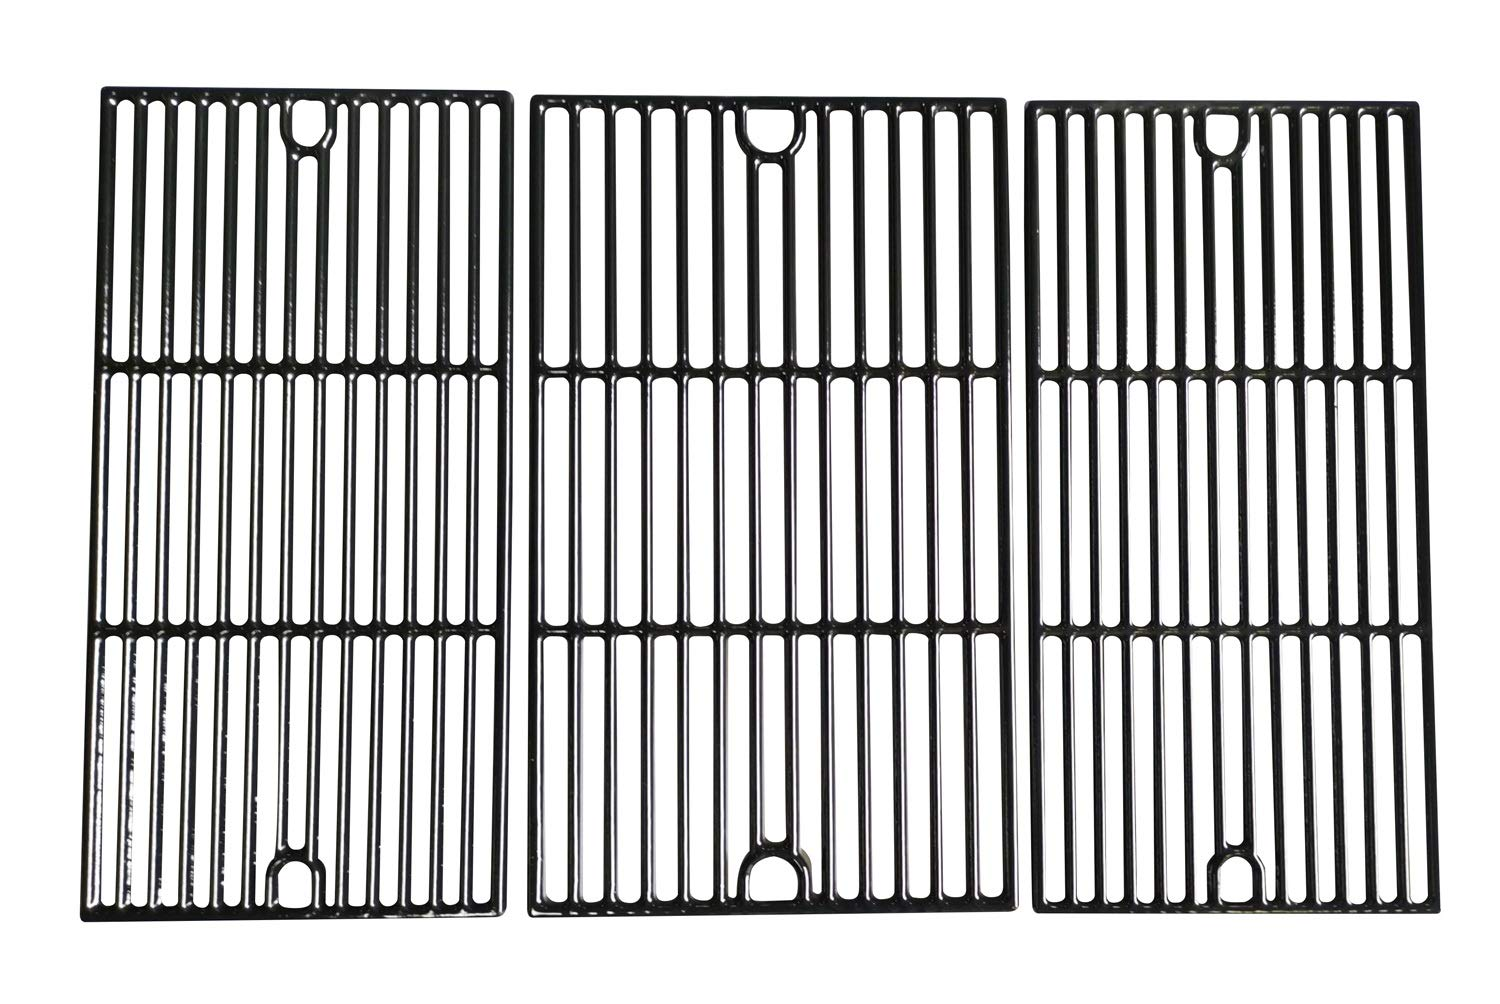 Hongso 17 5/8'' Porcelain Coated Cast Iron Cooking Grid Grates Replacement for Brinkmann 810-2545-W, 810-1456-S, 810-9425-W, 810-9520-S, 810-8300-W, 810-7231-W Gas Grill, Set of 3 (PCG233)